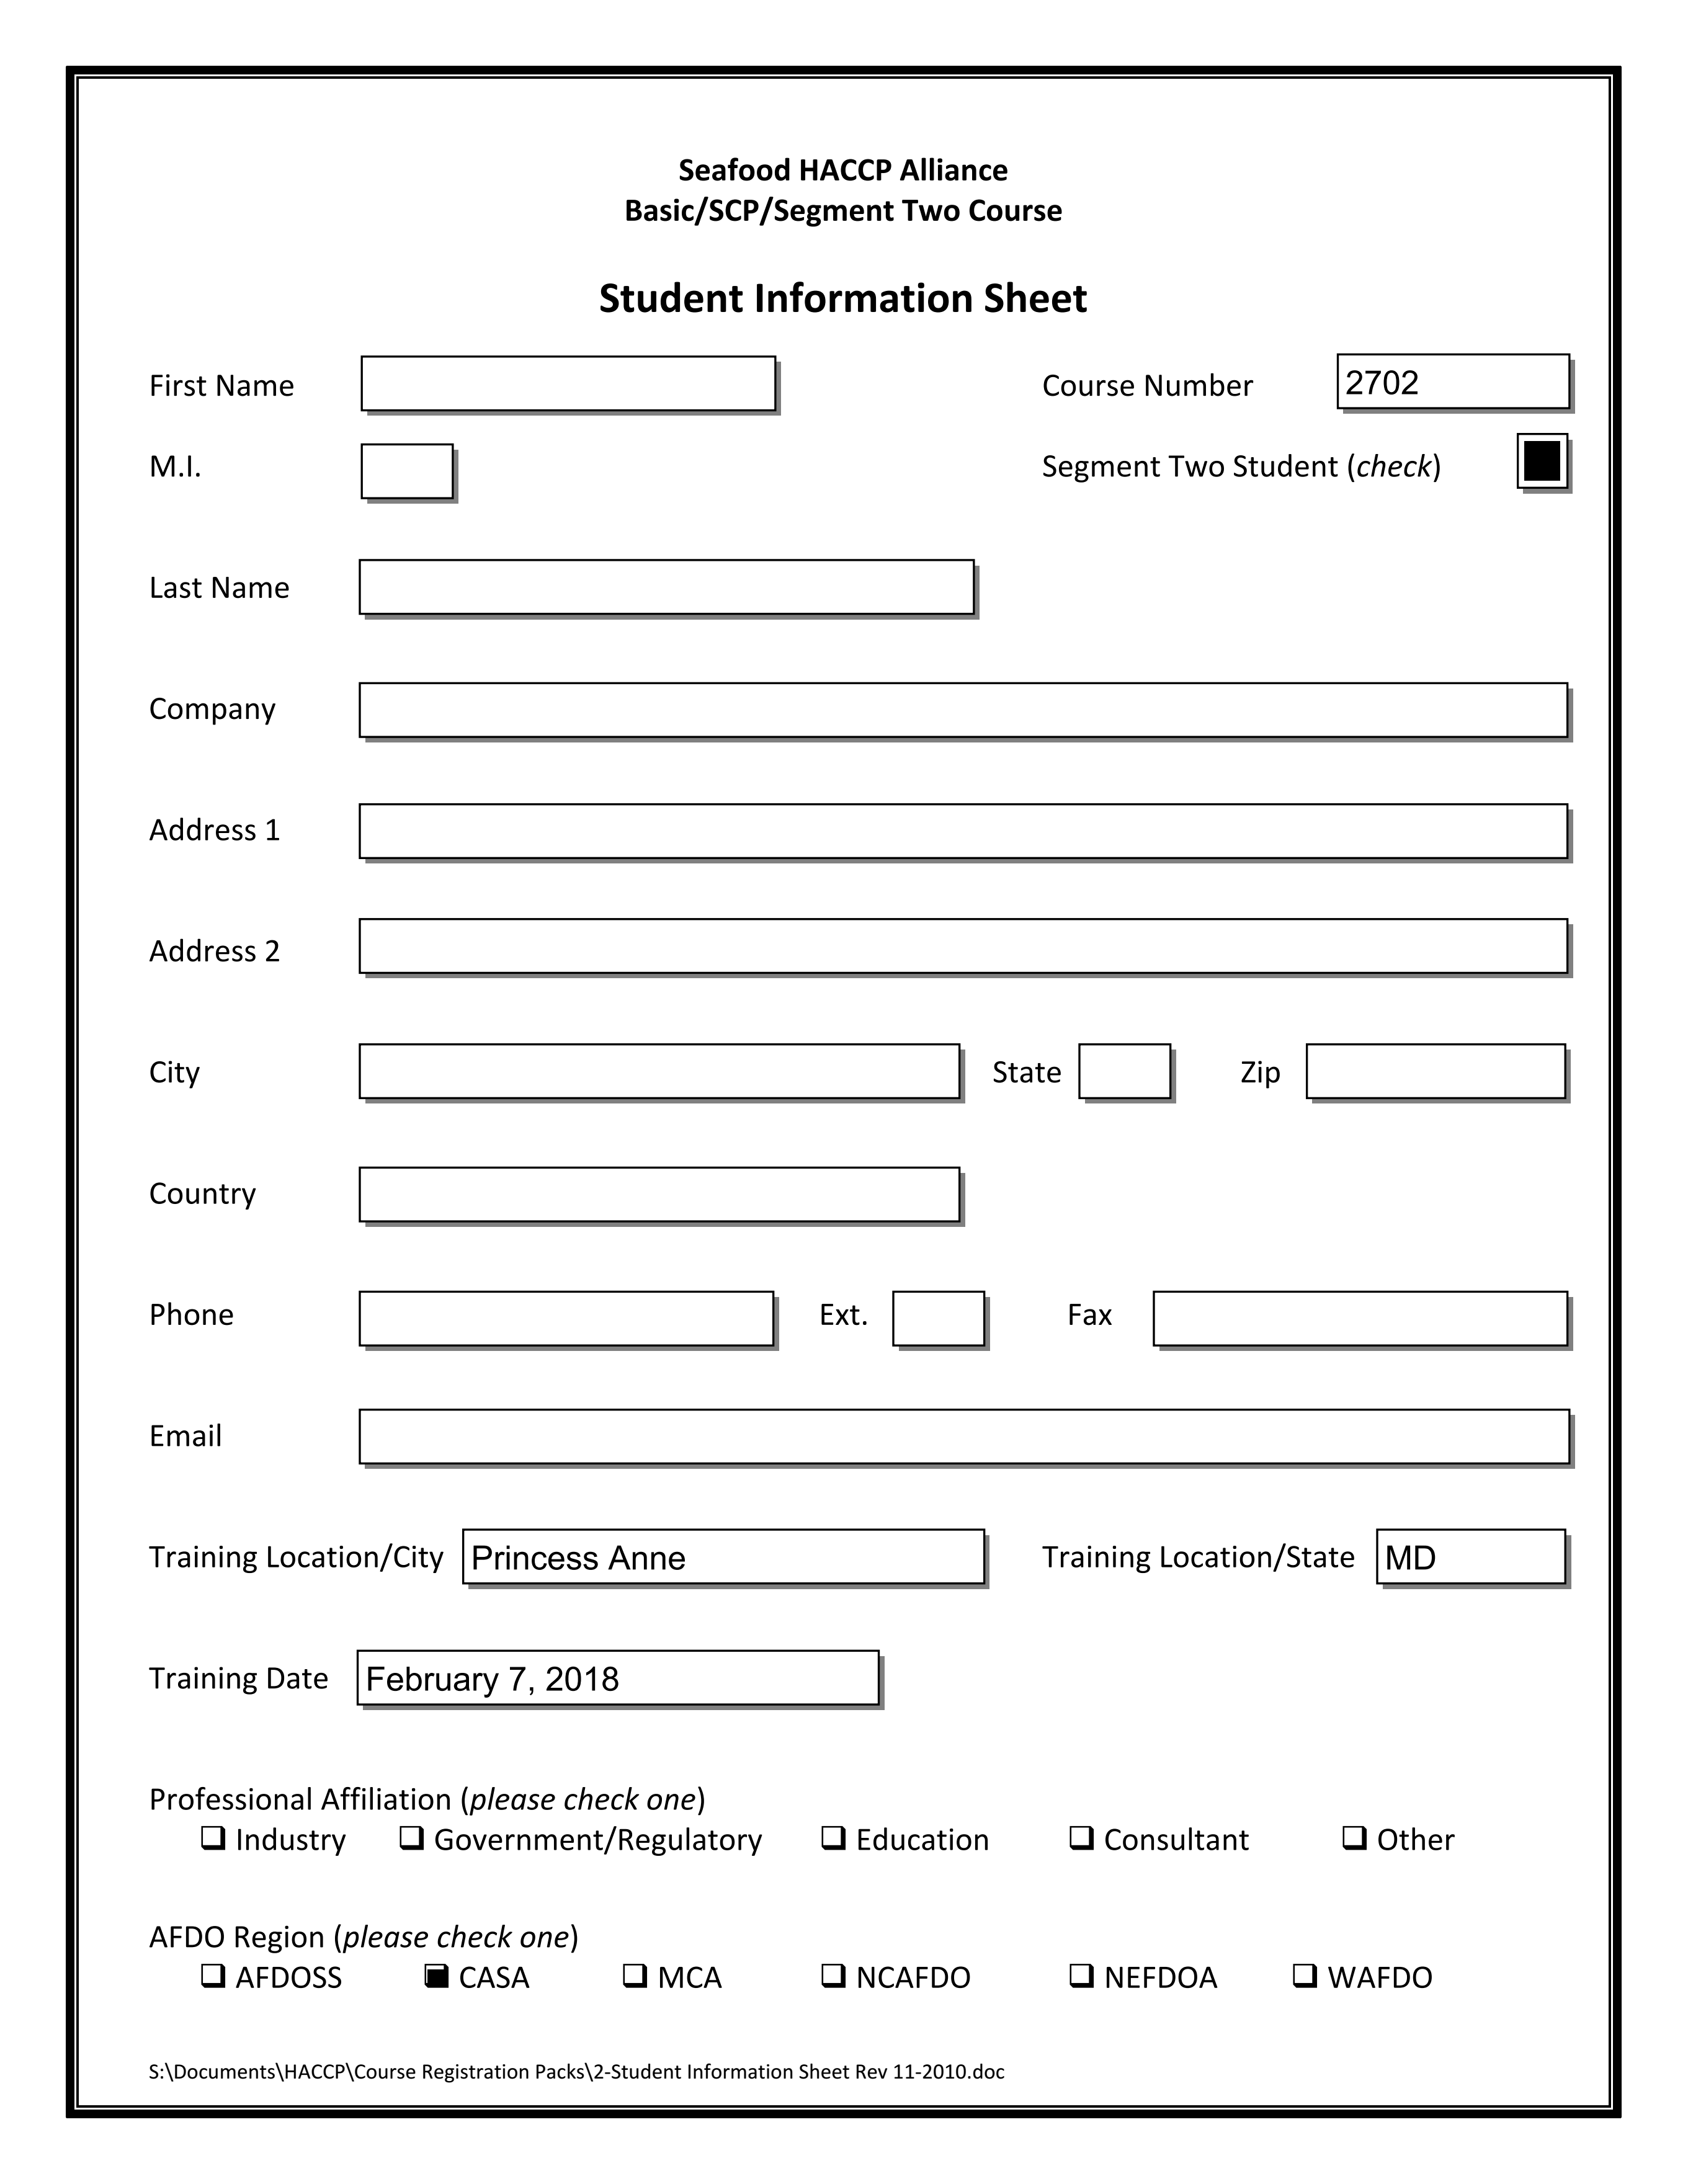 Seafood HACCP Segment 2 Course Student Information Sheet